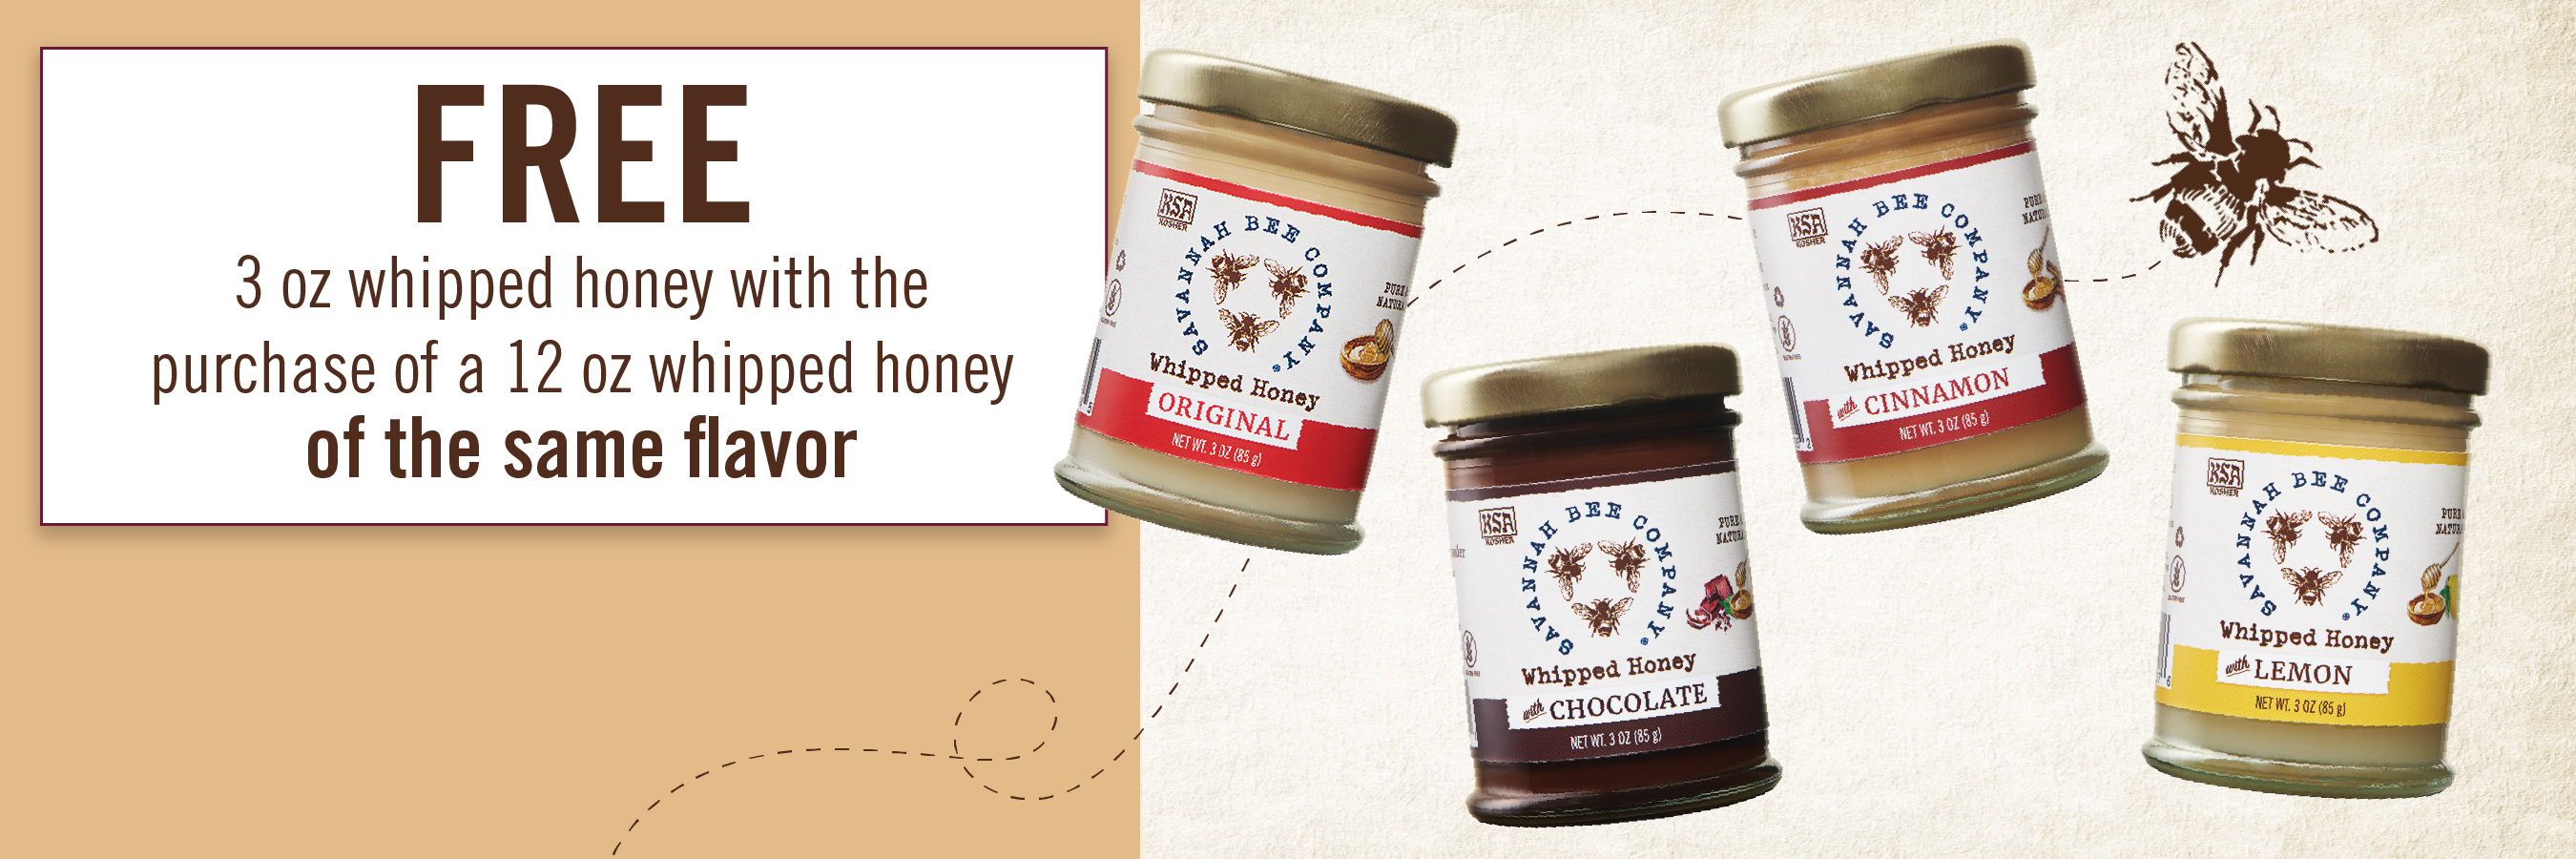 whipped-honey-promo.jpg